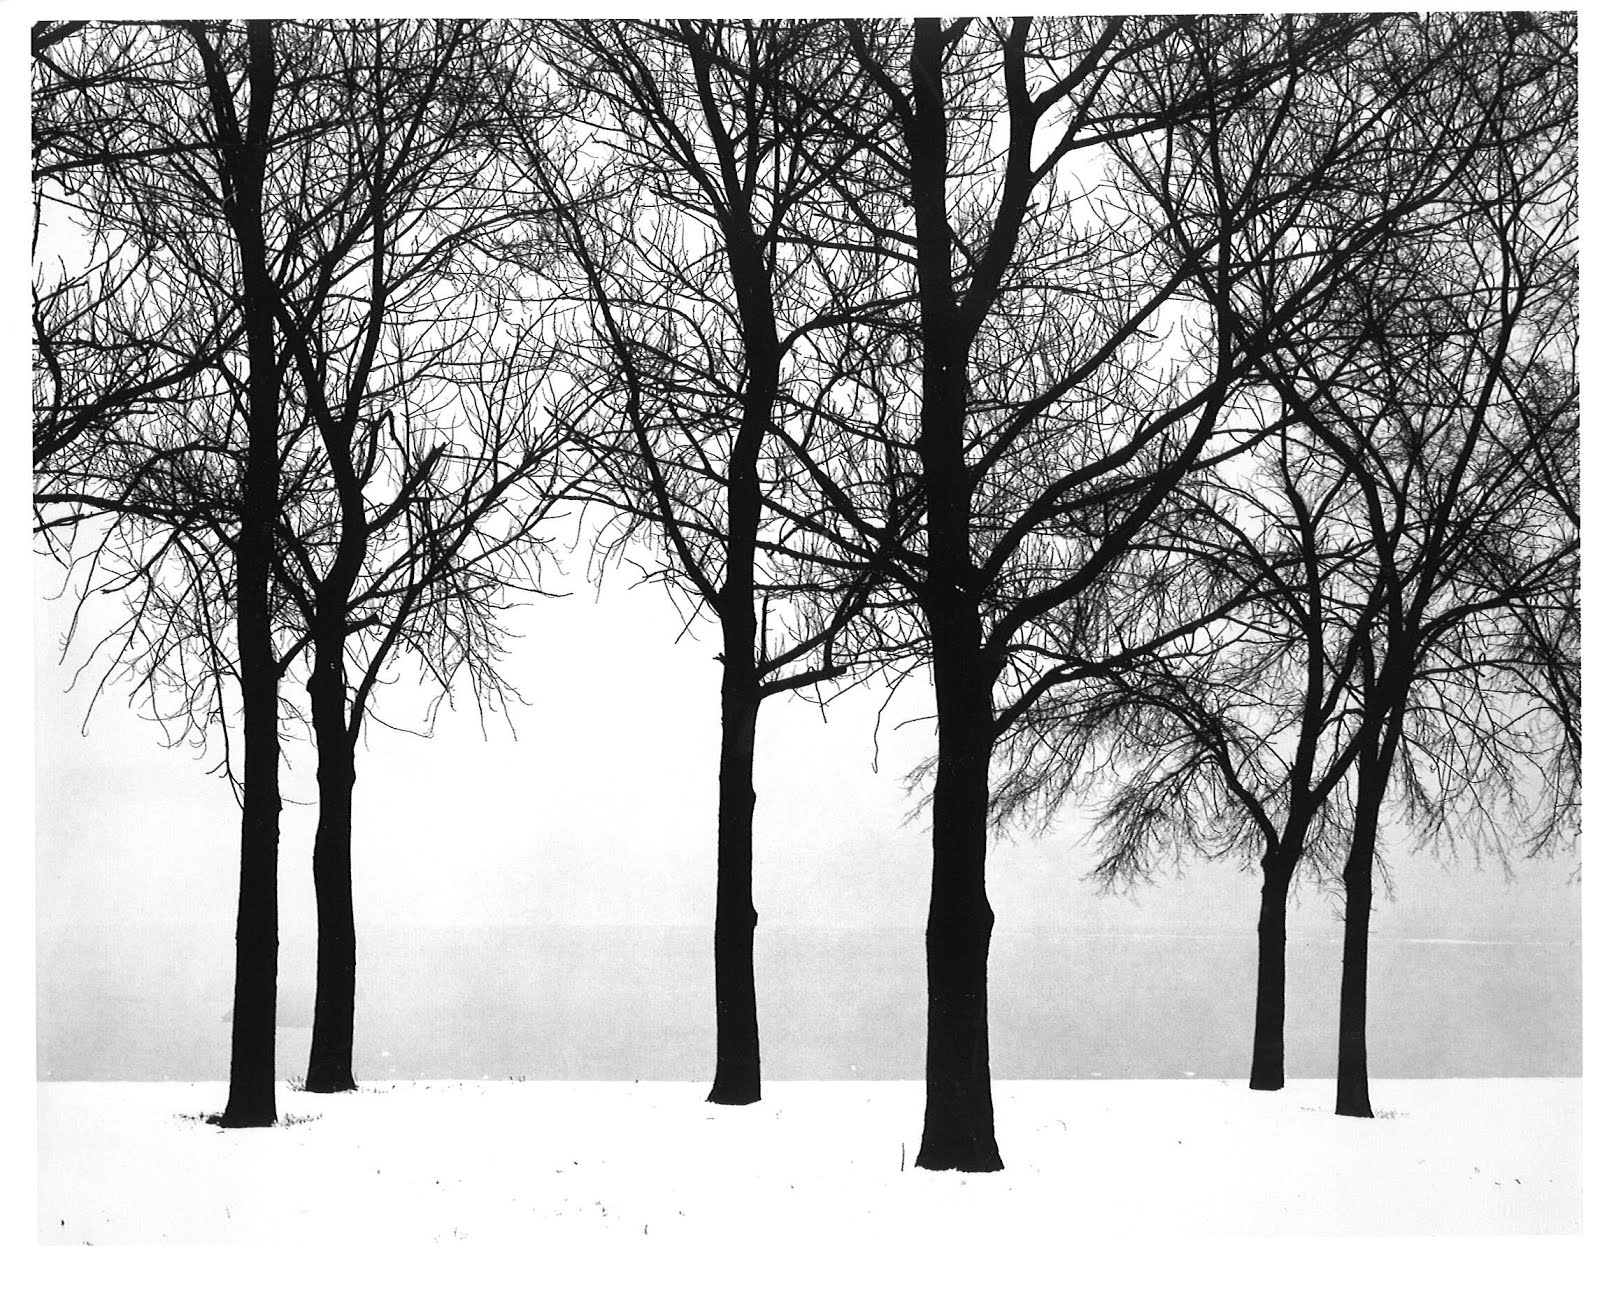 Chicago, 1952 by Harry Callahan